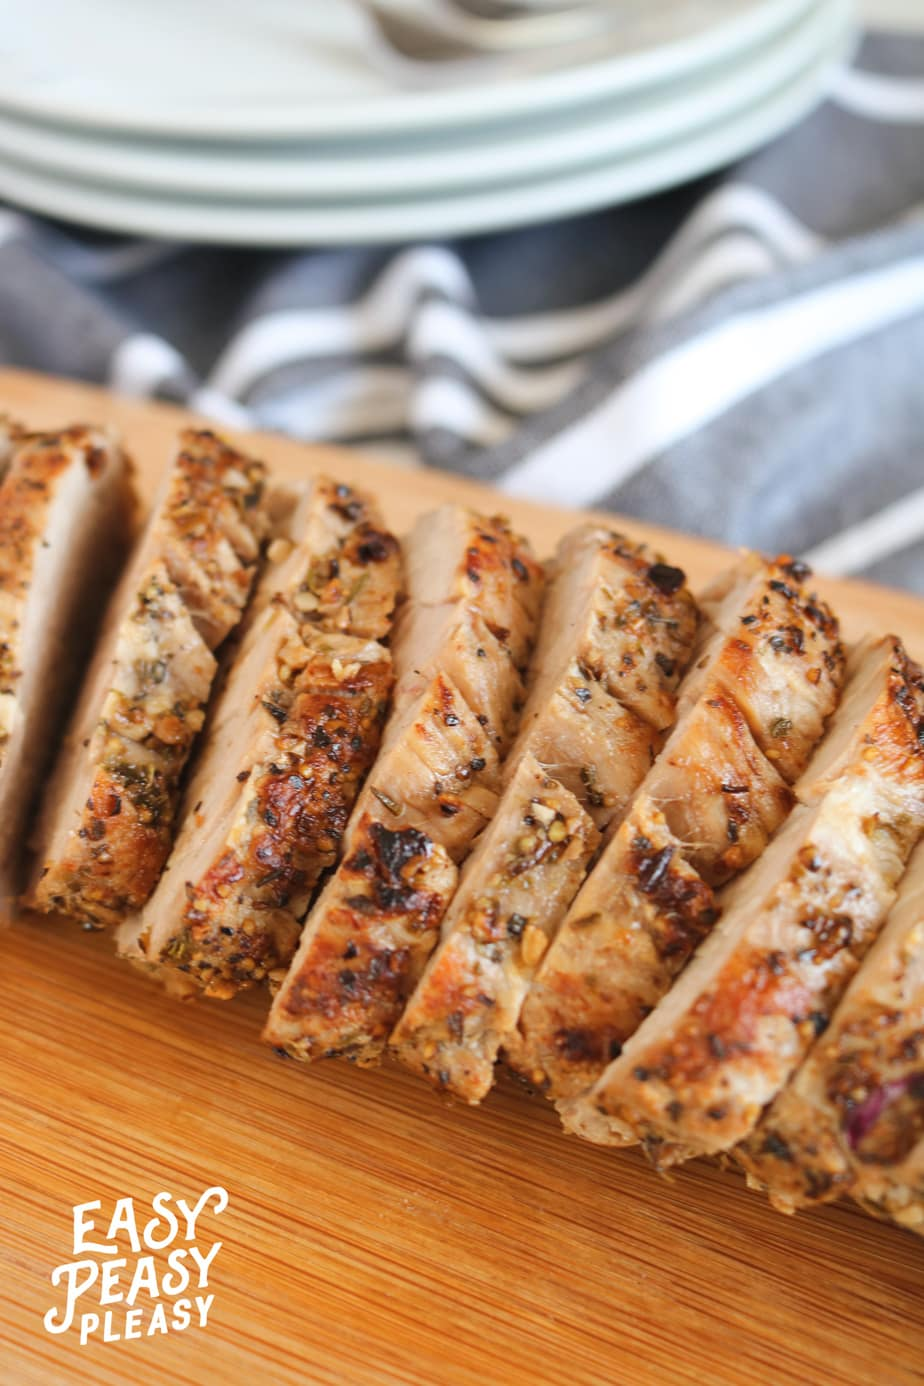 Inexpensive Juicy Pork Tenderloin Recipe from Easy Peasy Pleasy.